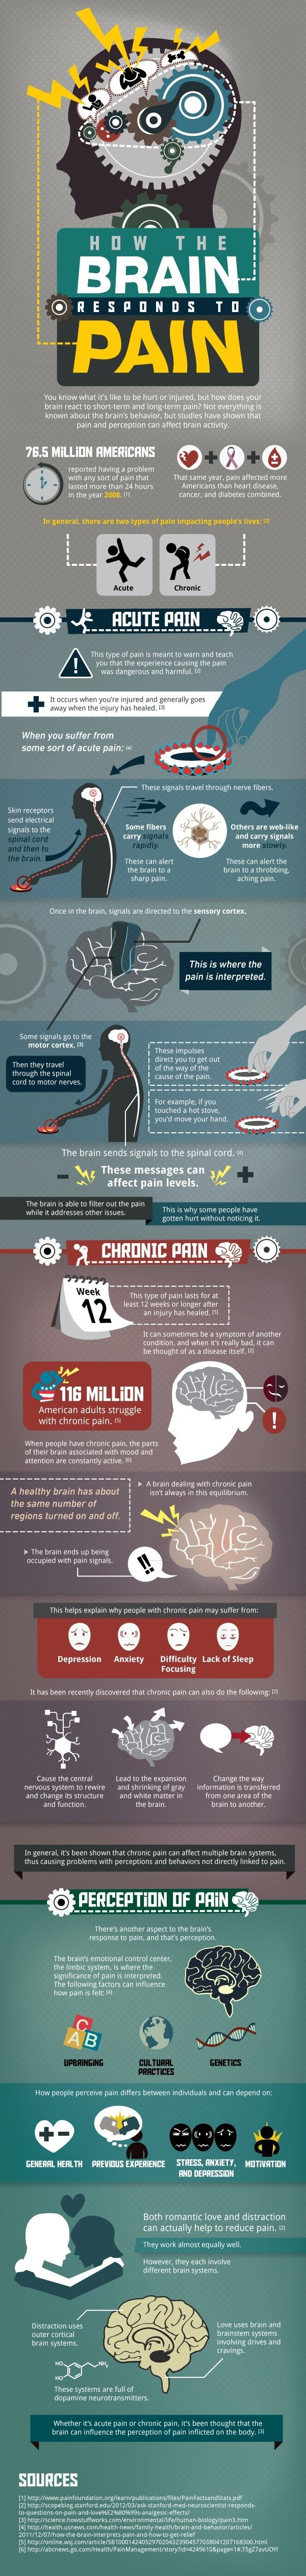 How The Brain Responds To Pain